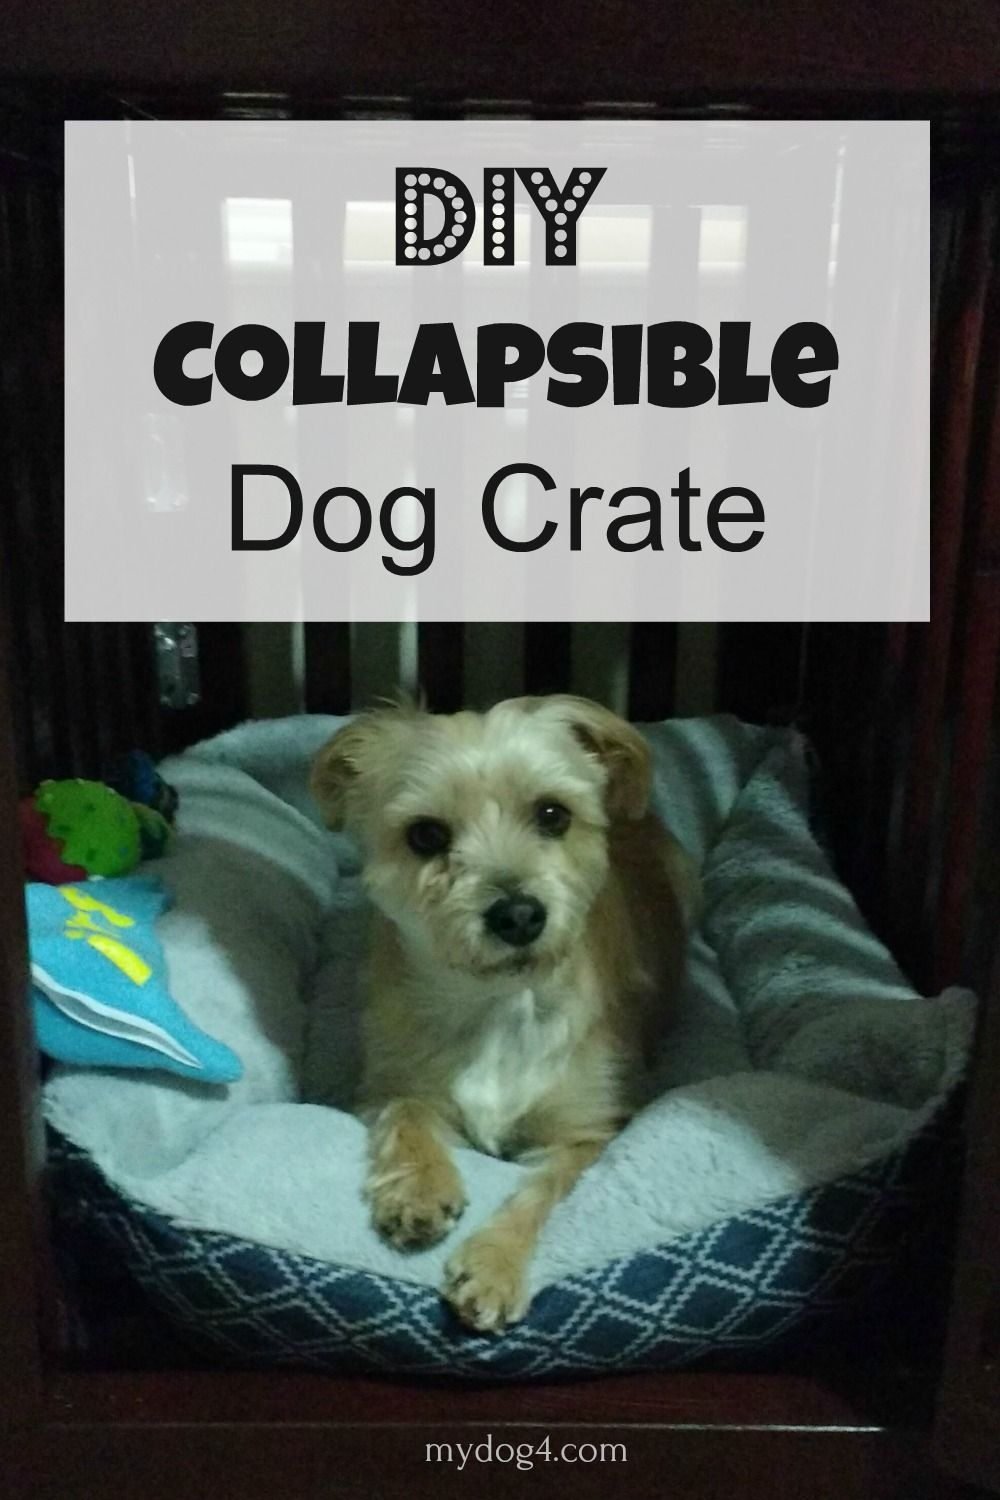 Dog treats collapsible dog crate diy dog crate dog crate